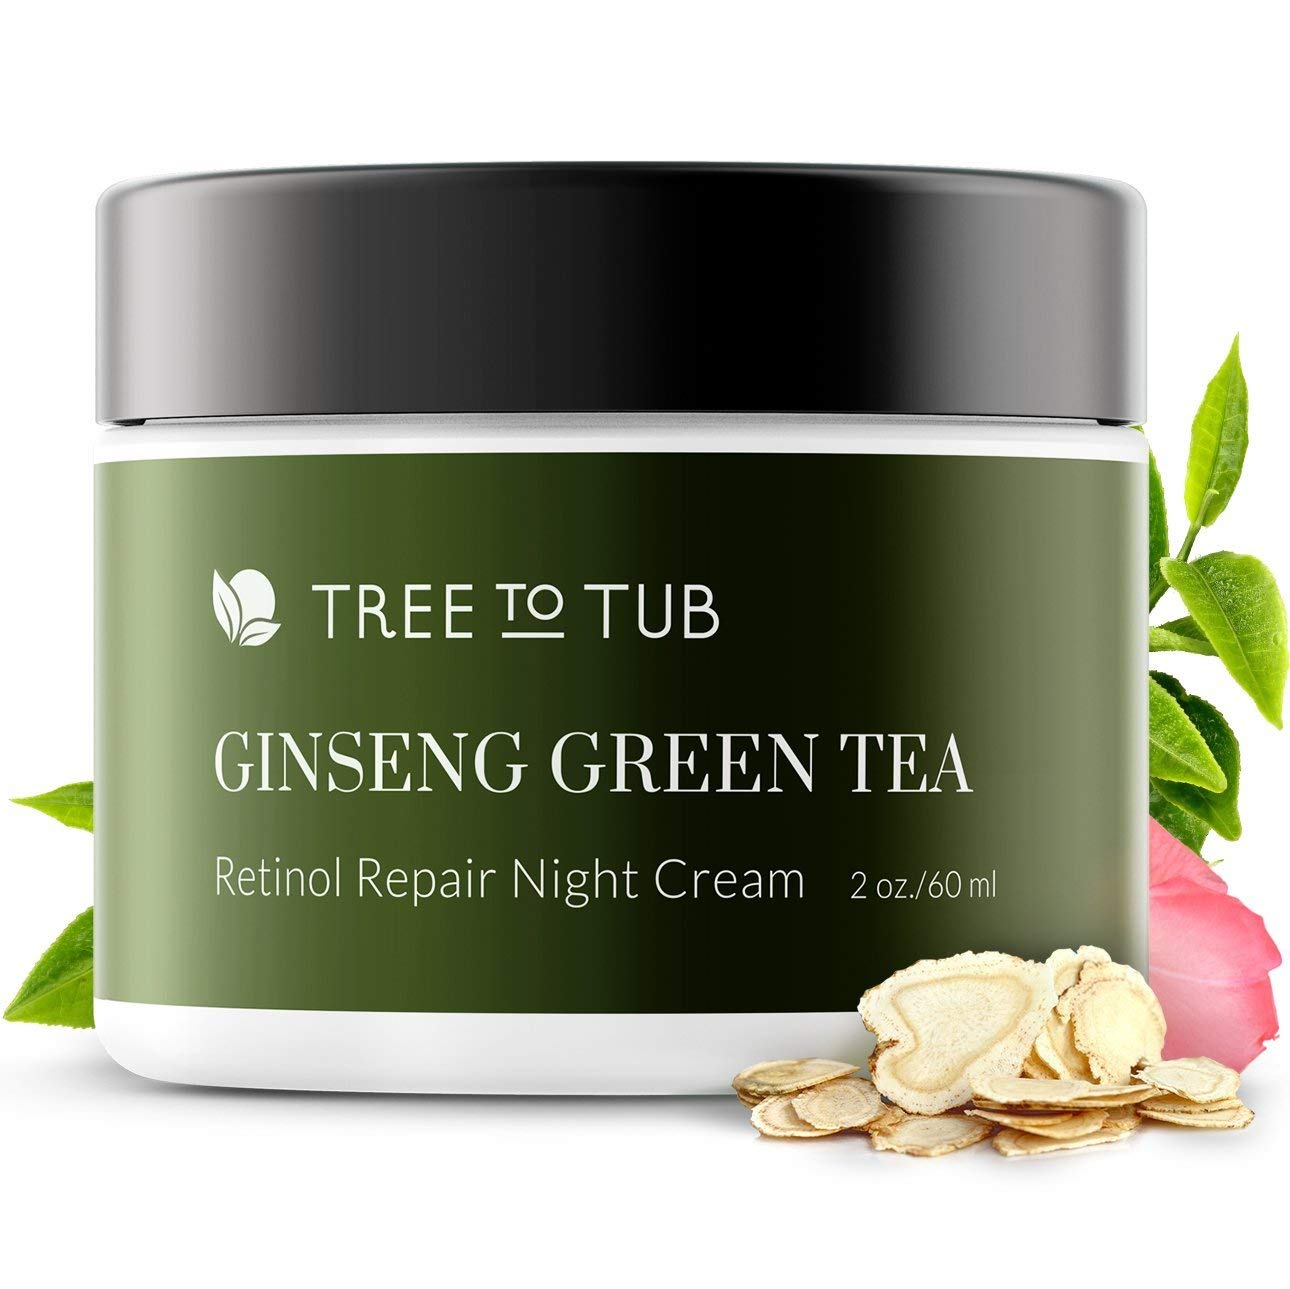 Retinol Sensitive Skin Night Cream for Face by Tree To Tub - pH 5.5 Hypoallergenic Anti Aging Night Cream with Hyaluronic Acid, Ginseng and Green Tea. Wake Up to Moisturized Dewy Glowing Skin 2 oz